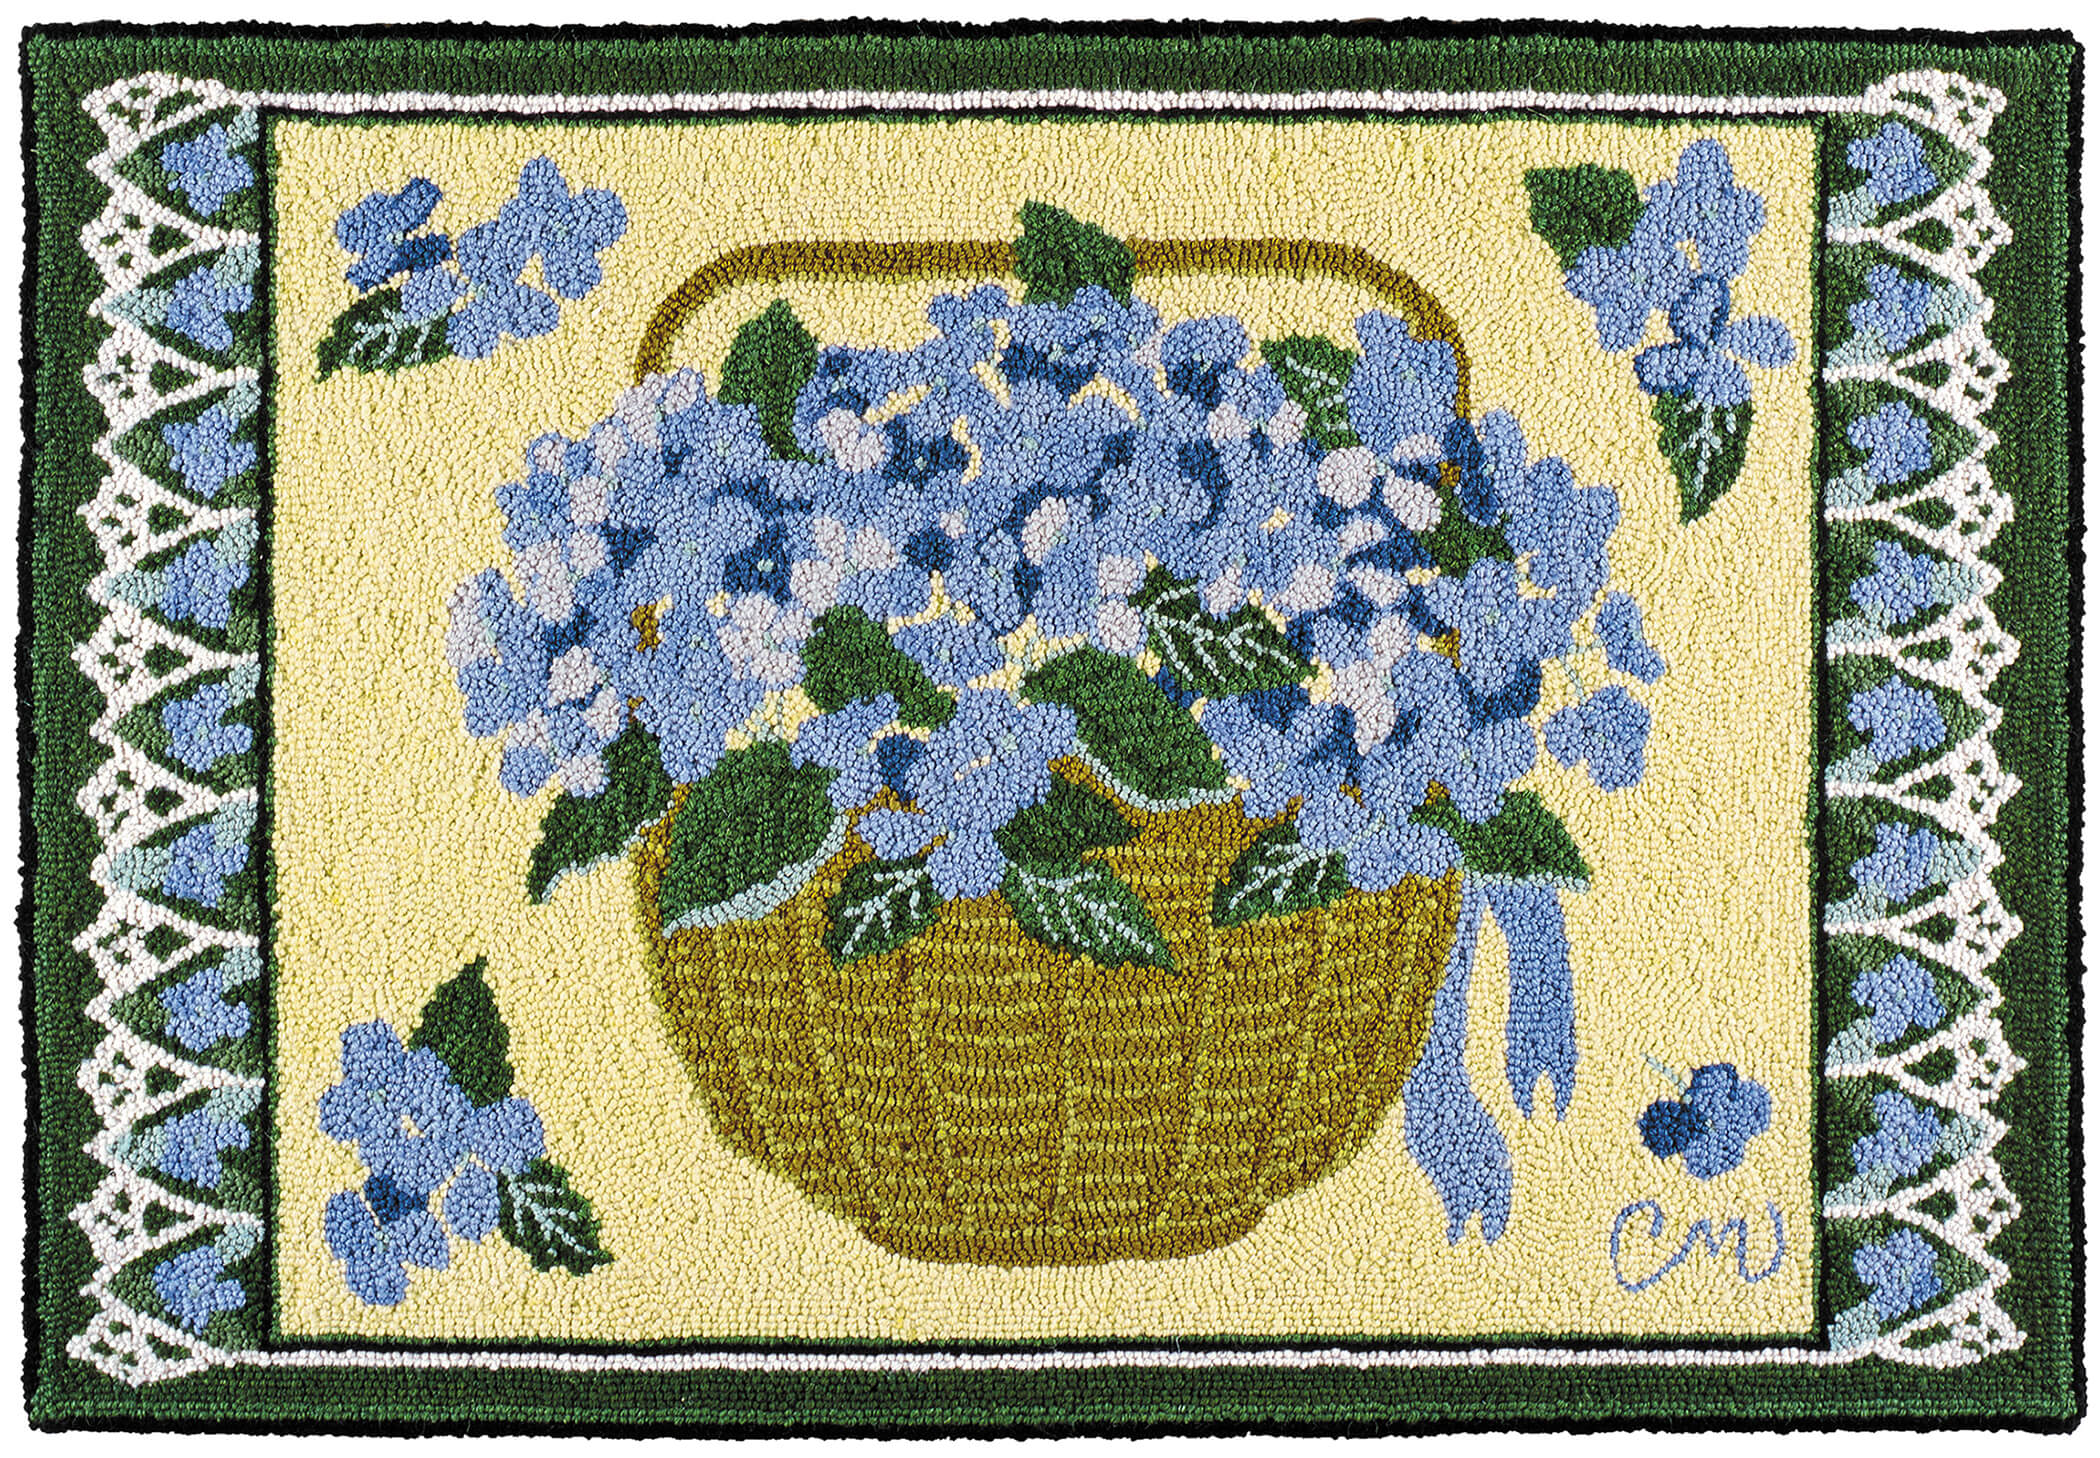 hand hooked rugs claire murray hydrangea basker 2 x 3 hand hooked rug QZVFWEW